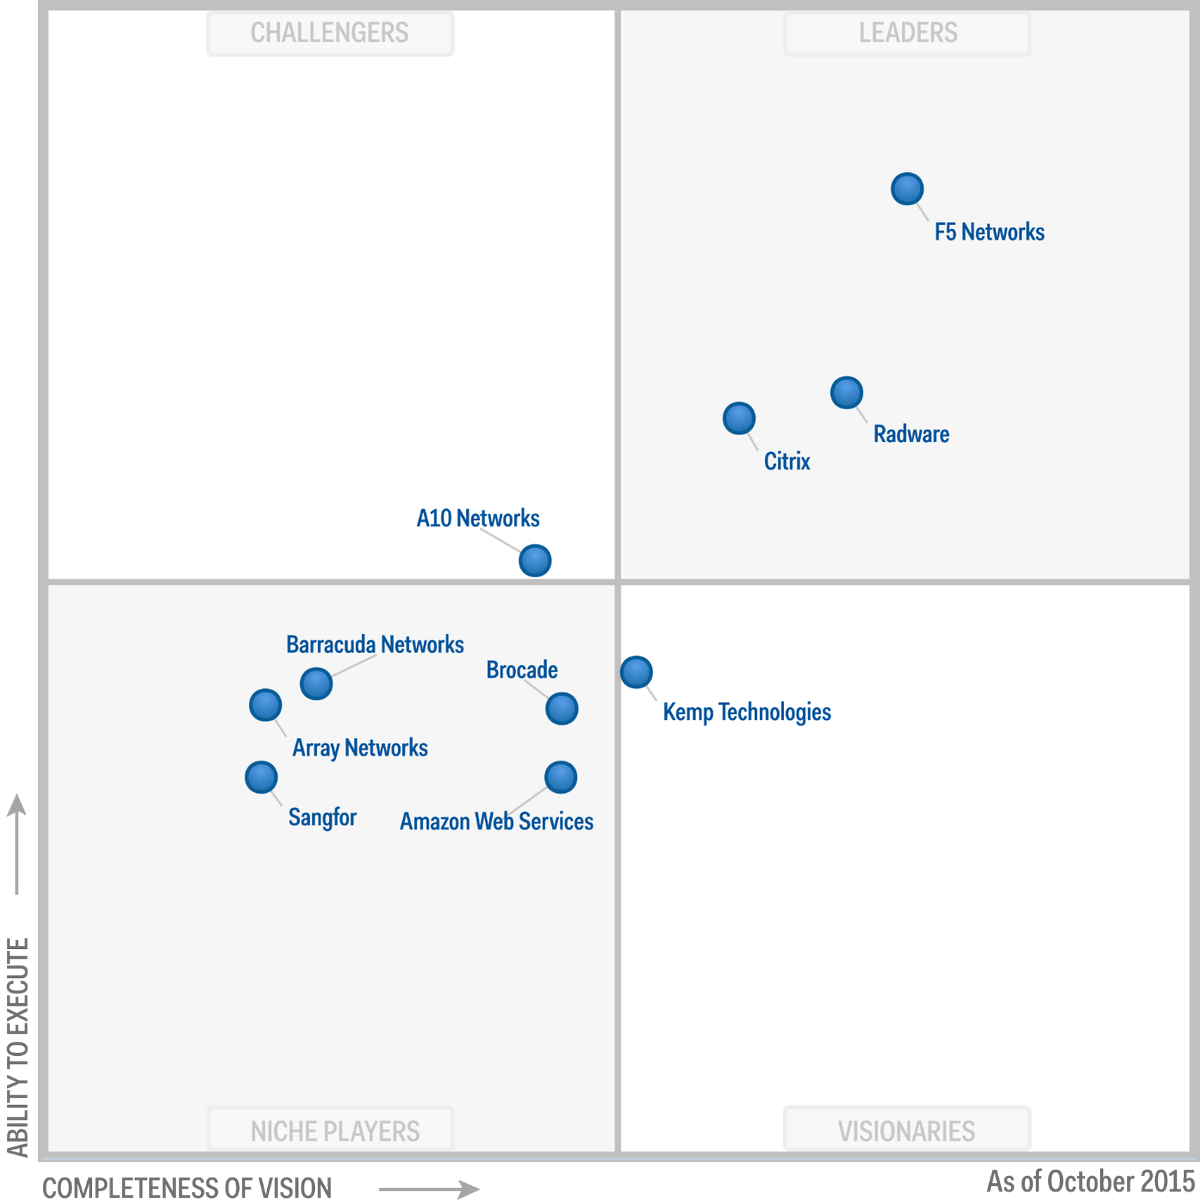 F5 is a Leader again in #Gartner's Magic Quadrant for Application Delivery Controllers (ADC): http://t.co/7RapiCT0ZI http://t.co/jg22IzDPf7